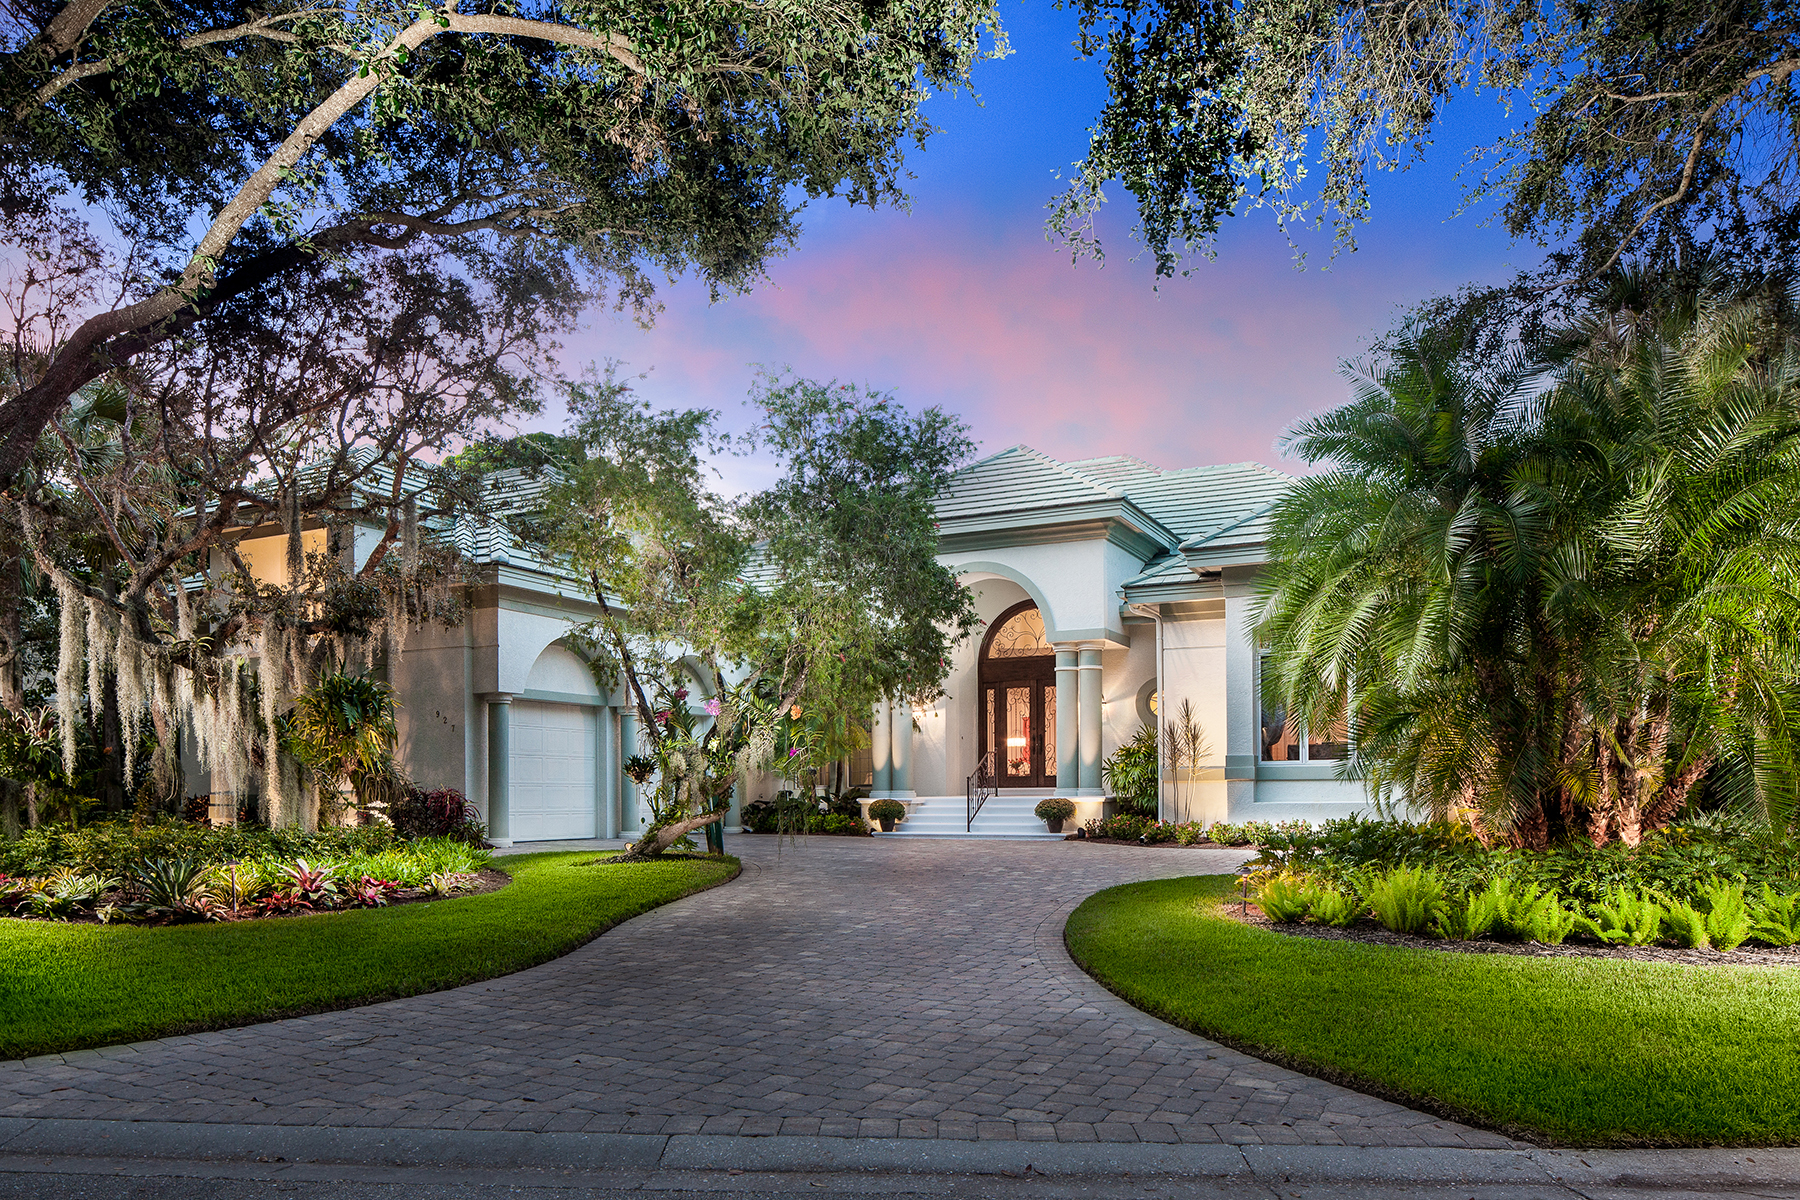 Single Family Home for Sale at Naples 927 Barcarmil Way Naples, Florida, 34110 United States